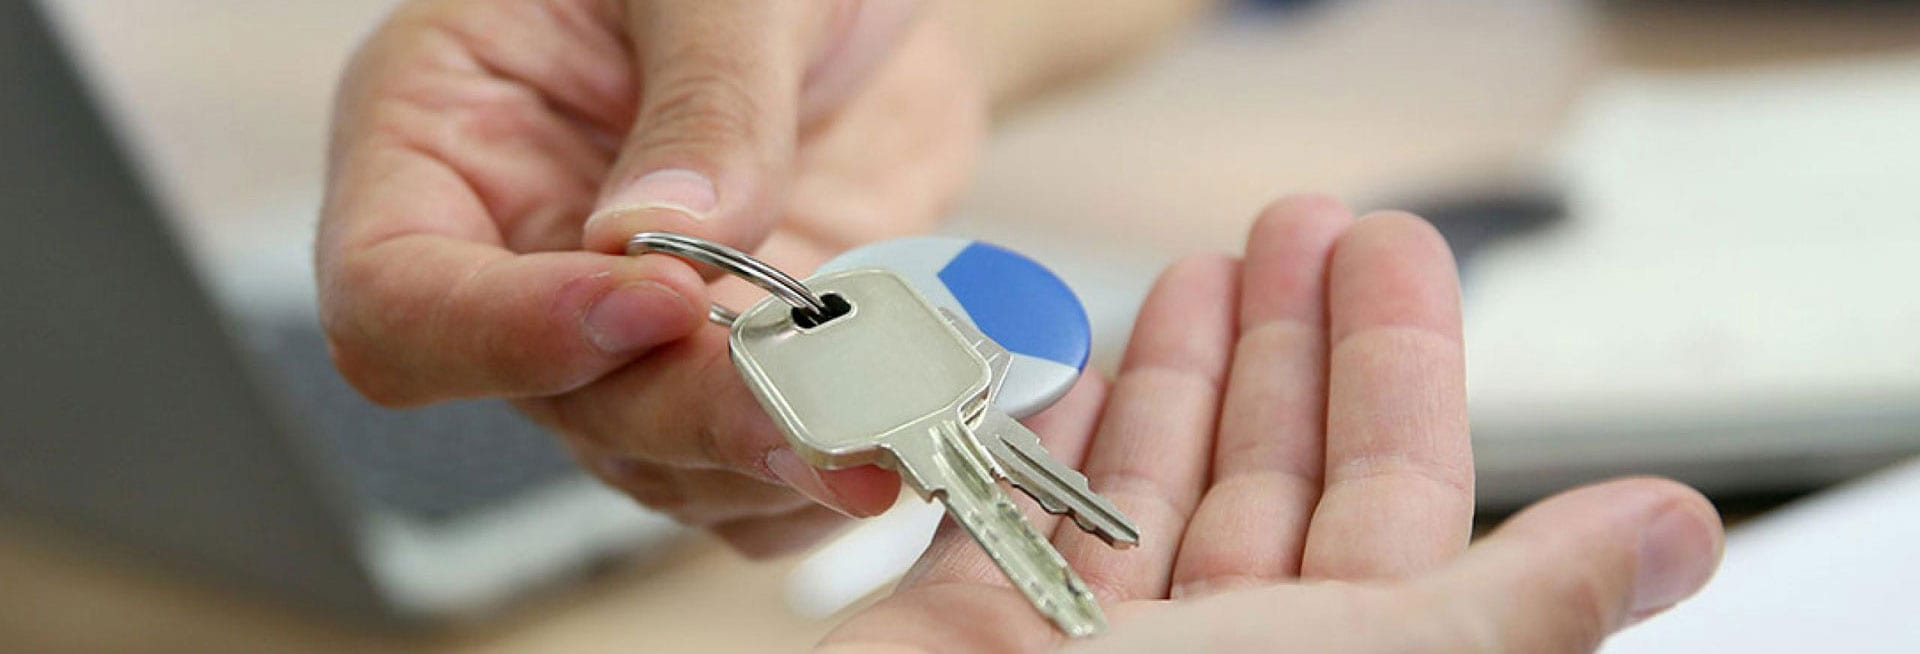 Person being handed car keys.